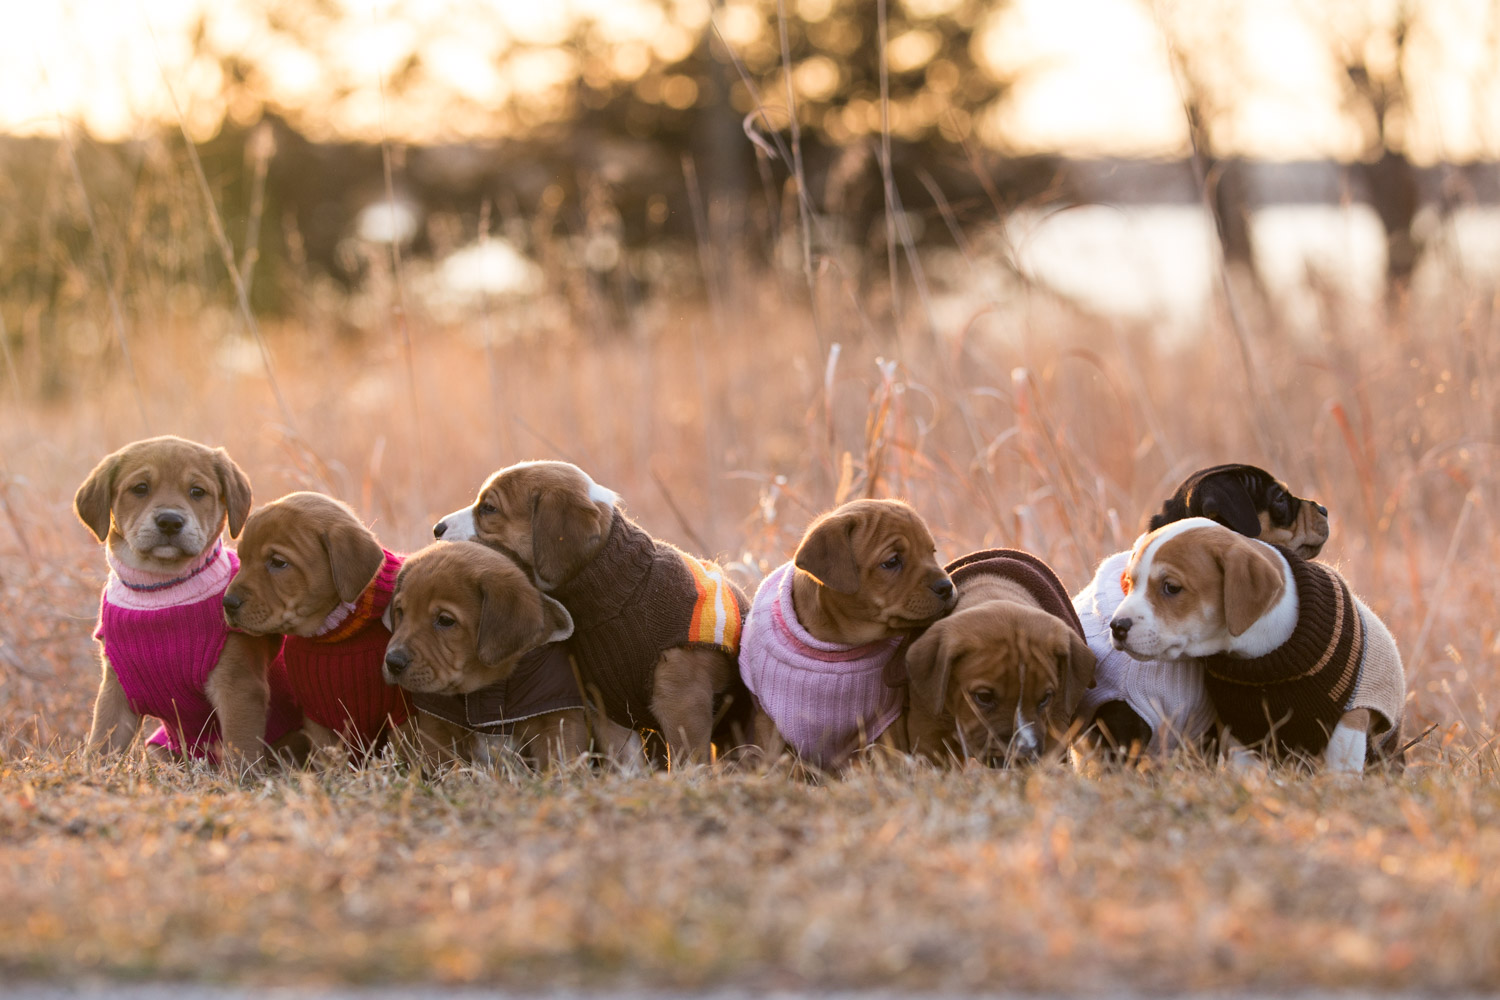 Puppies-blog-9.jpg